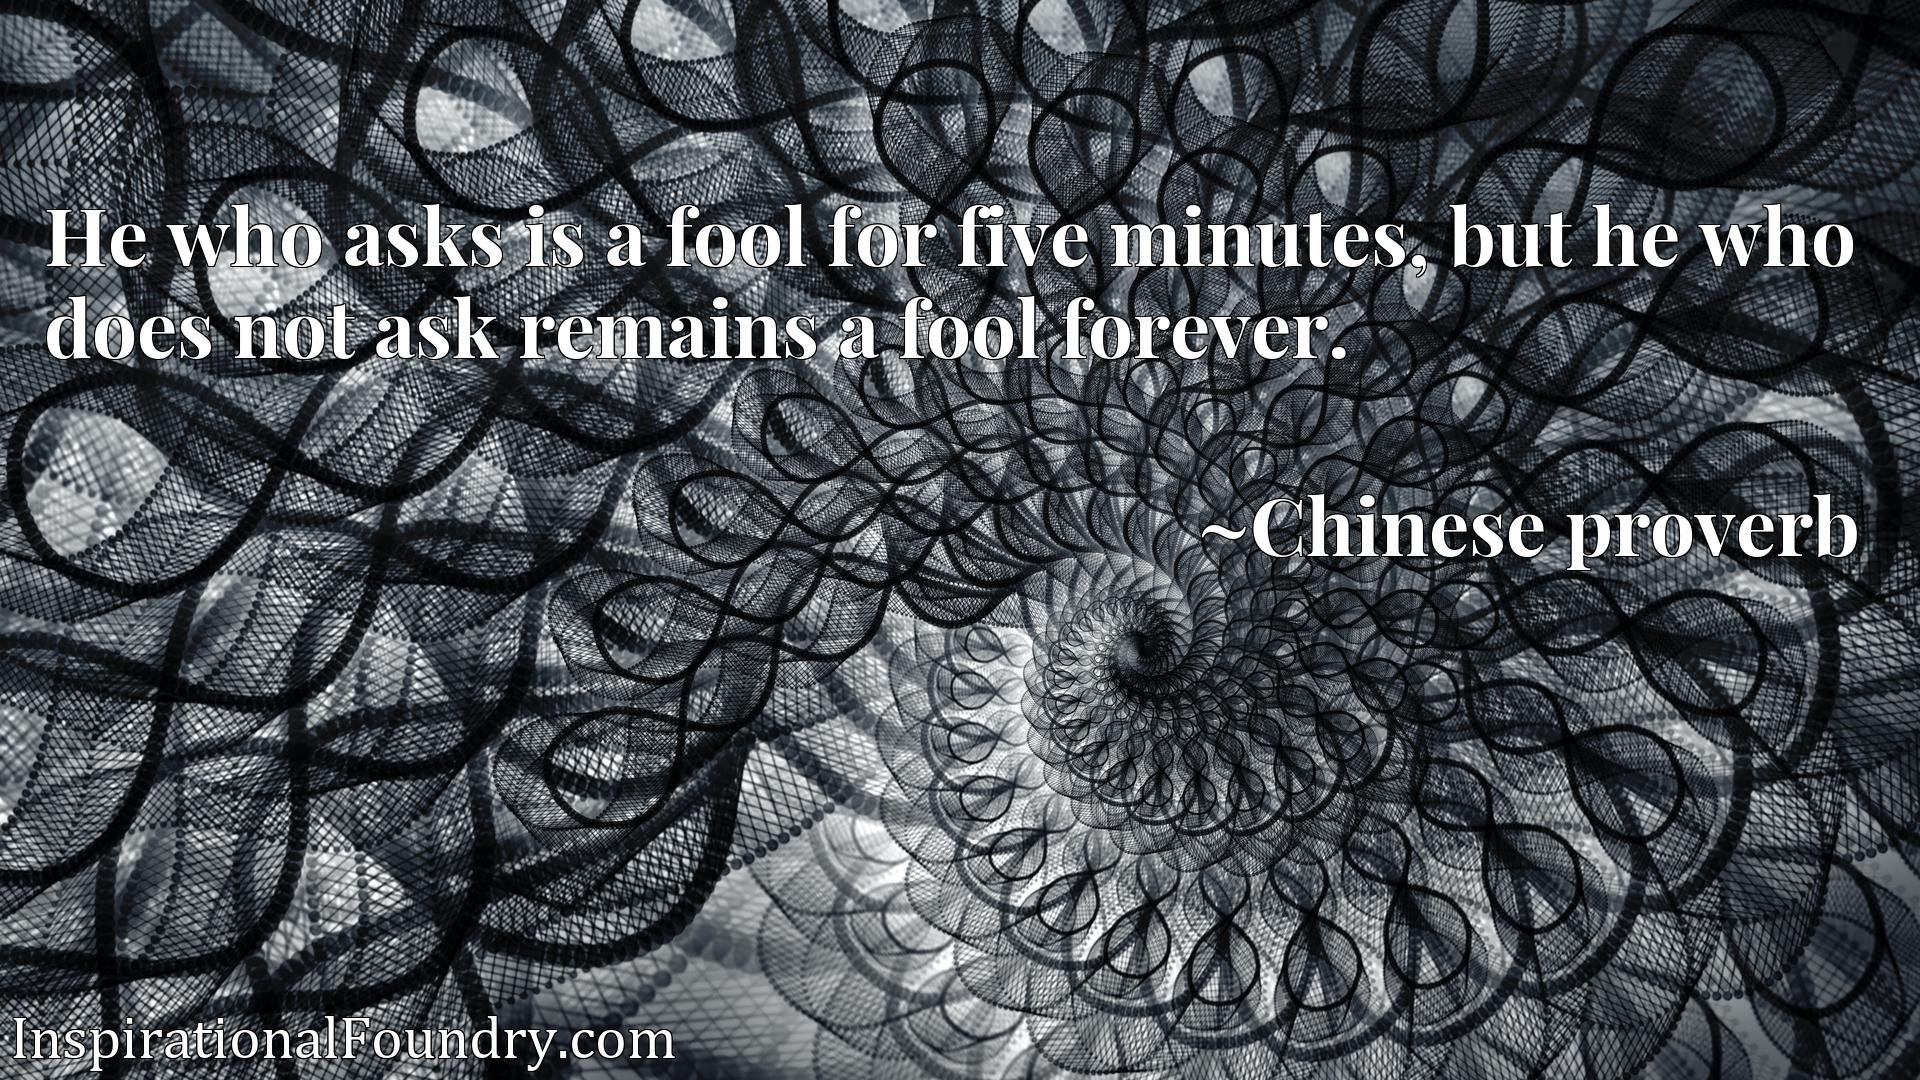 Quote Picture :He who asks is a fool for five minutes, but he who does not ask remains a fool forever.